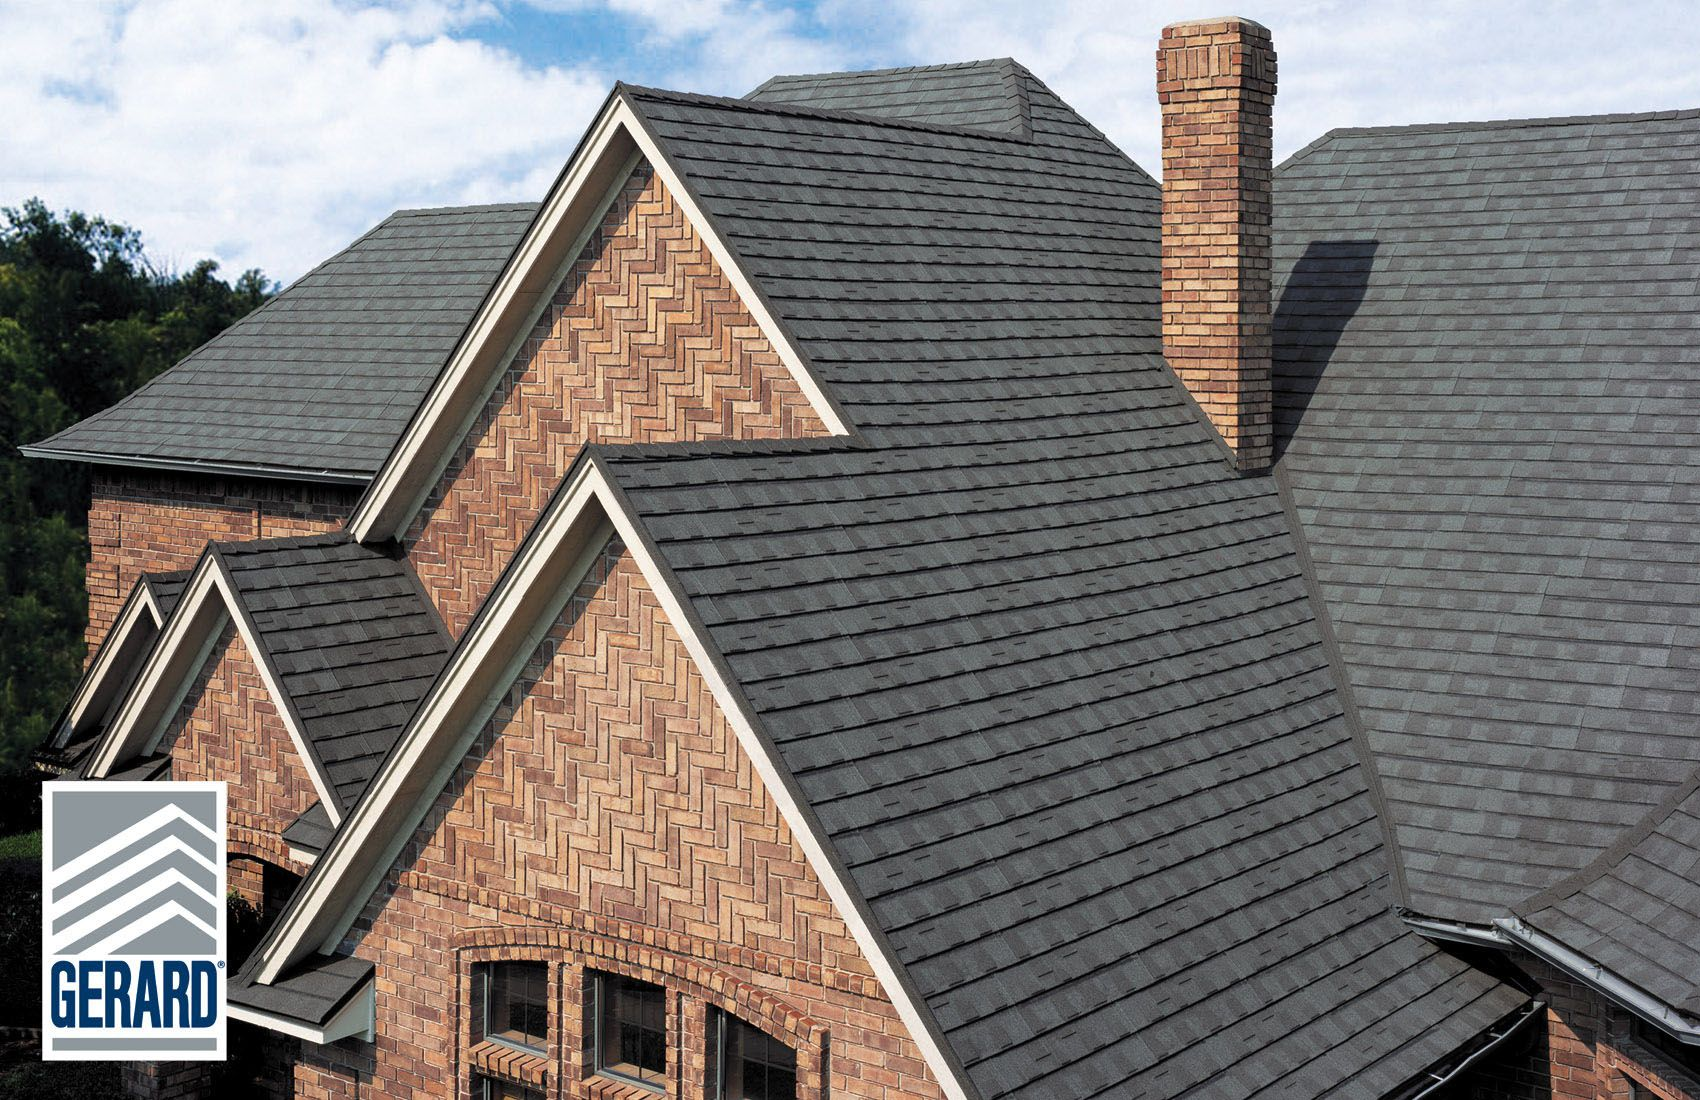 Gerard Roof Beautiful Roofs Roofing Best Roofing Company